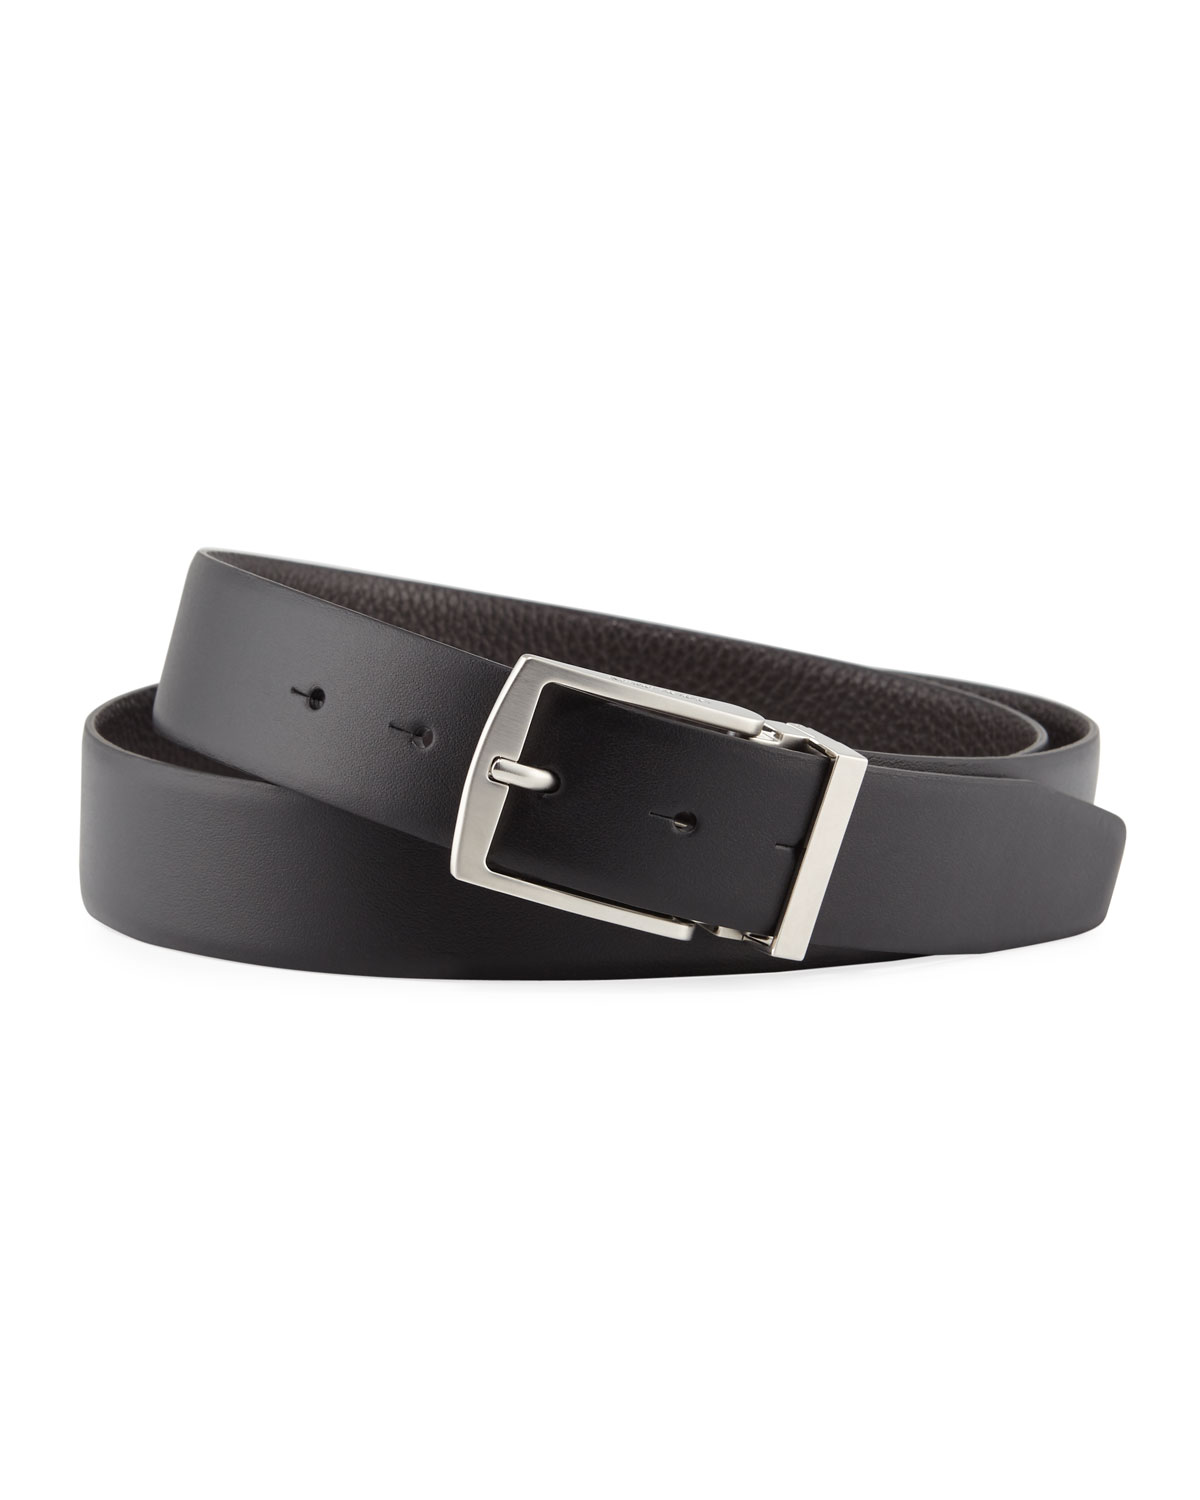 Men's Boxed Gift Set with Reversible Belt & Two Buckles